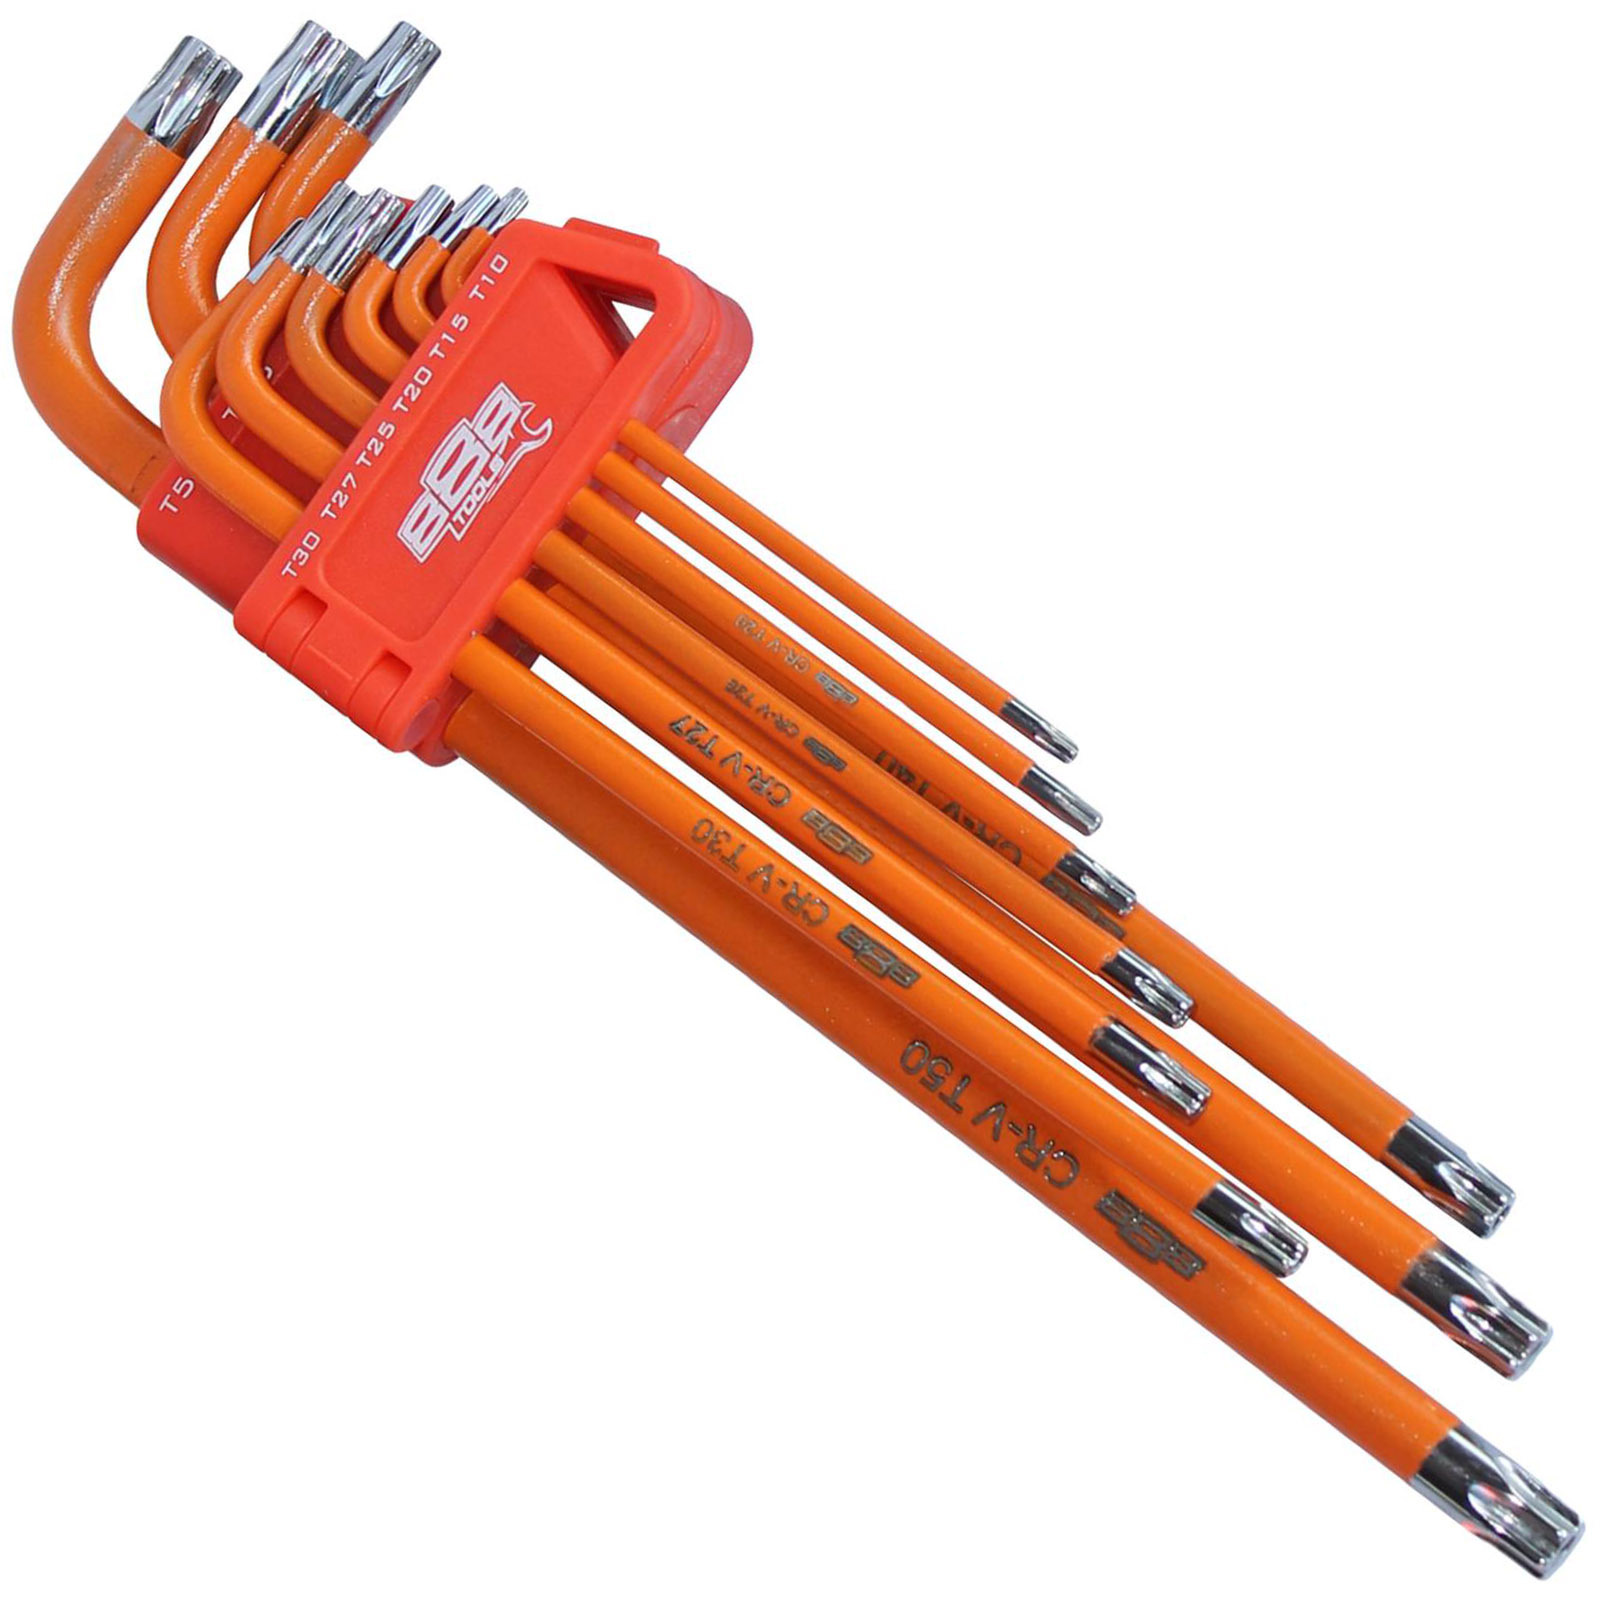 888 Tools 9pc Hex Key Set - Tamperproof Torx (Orange)